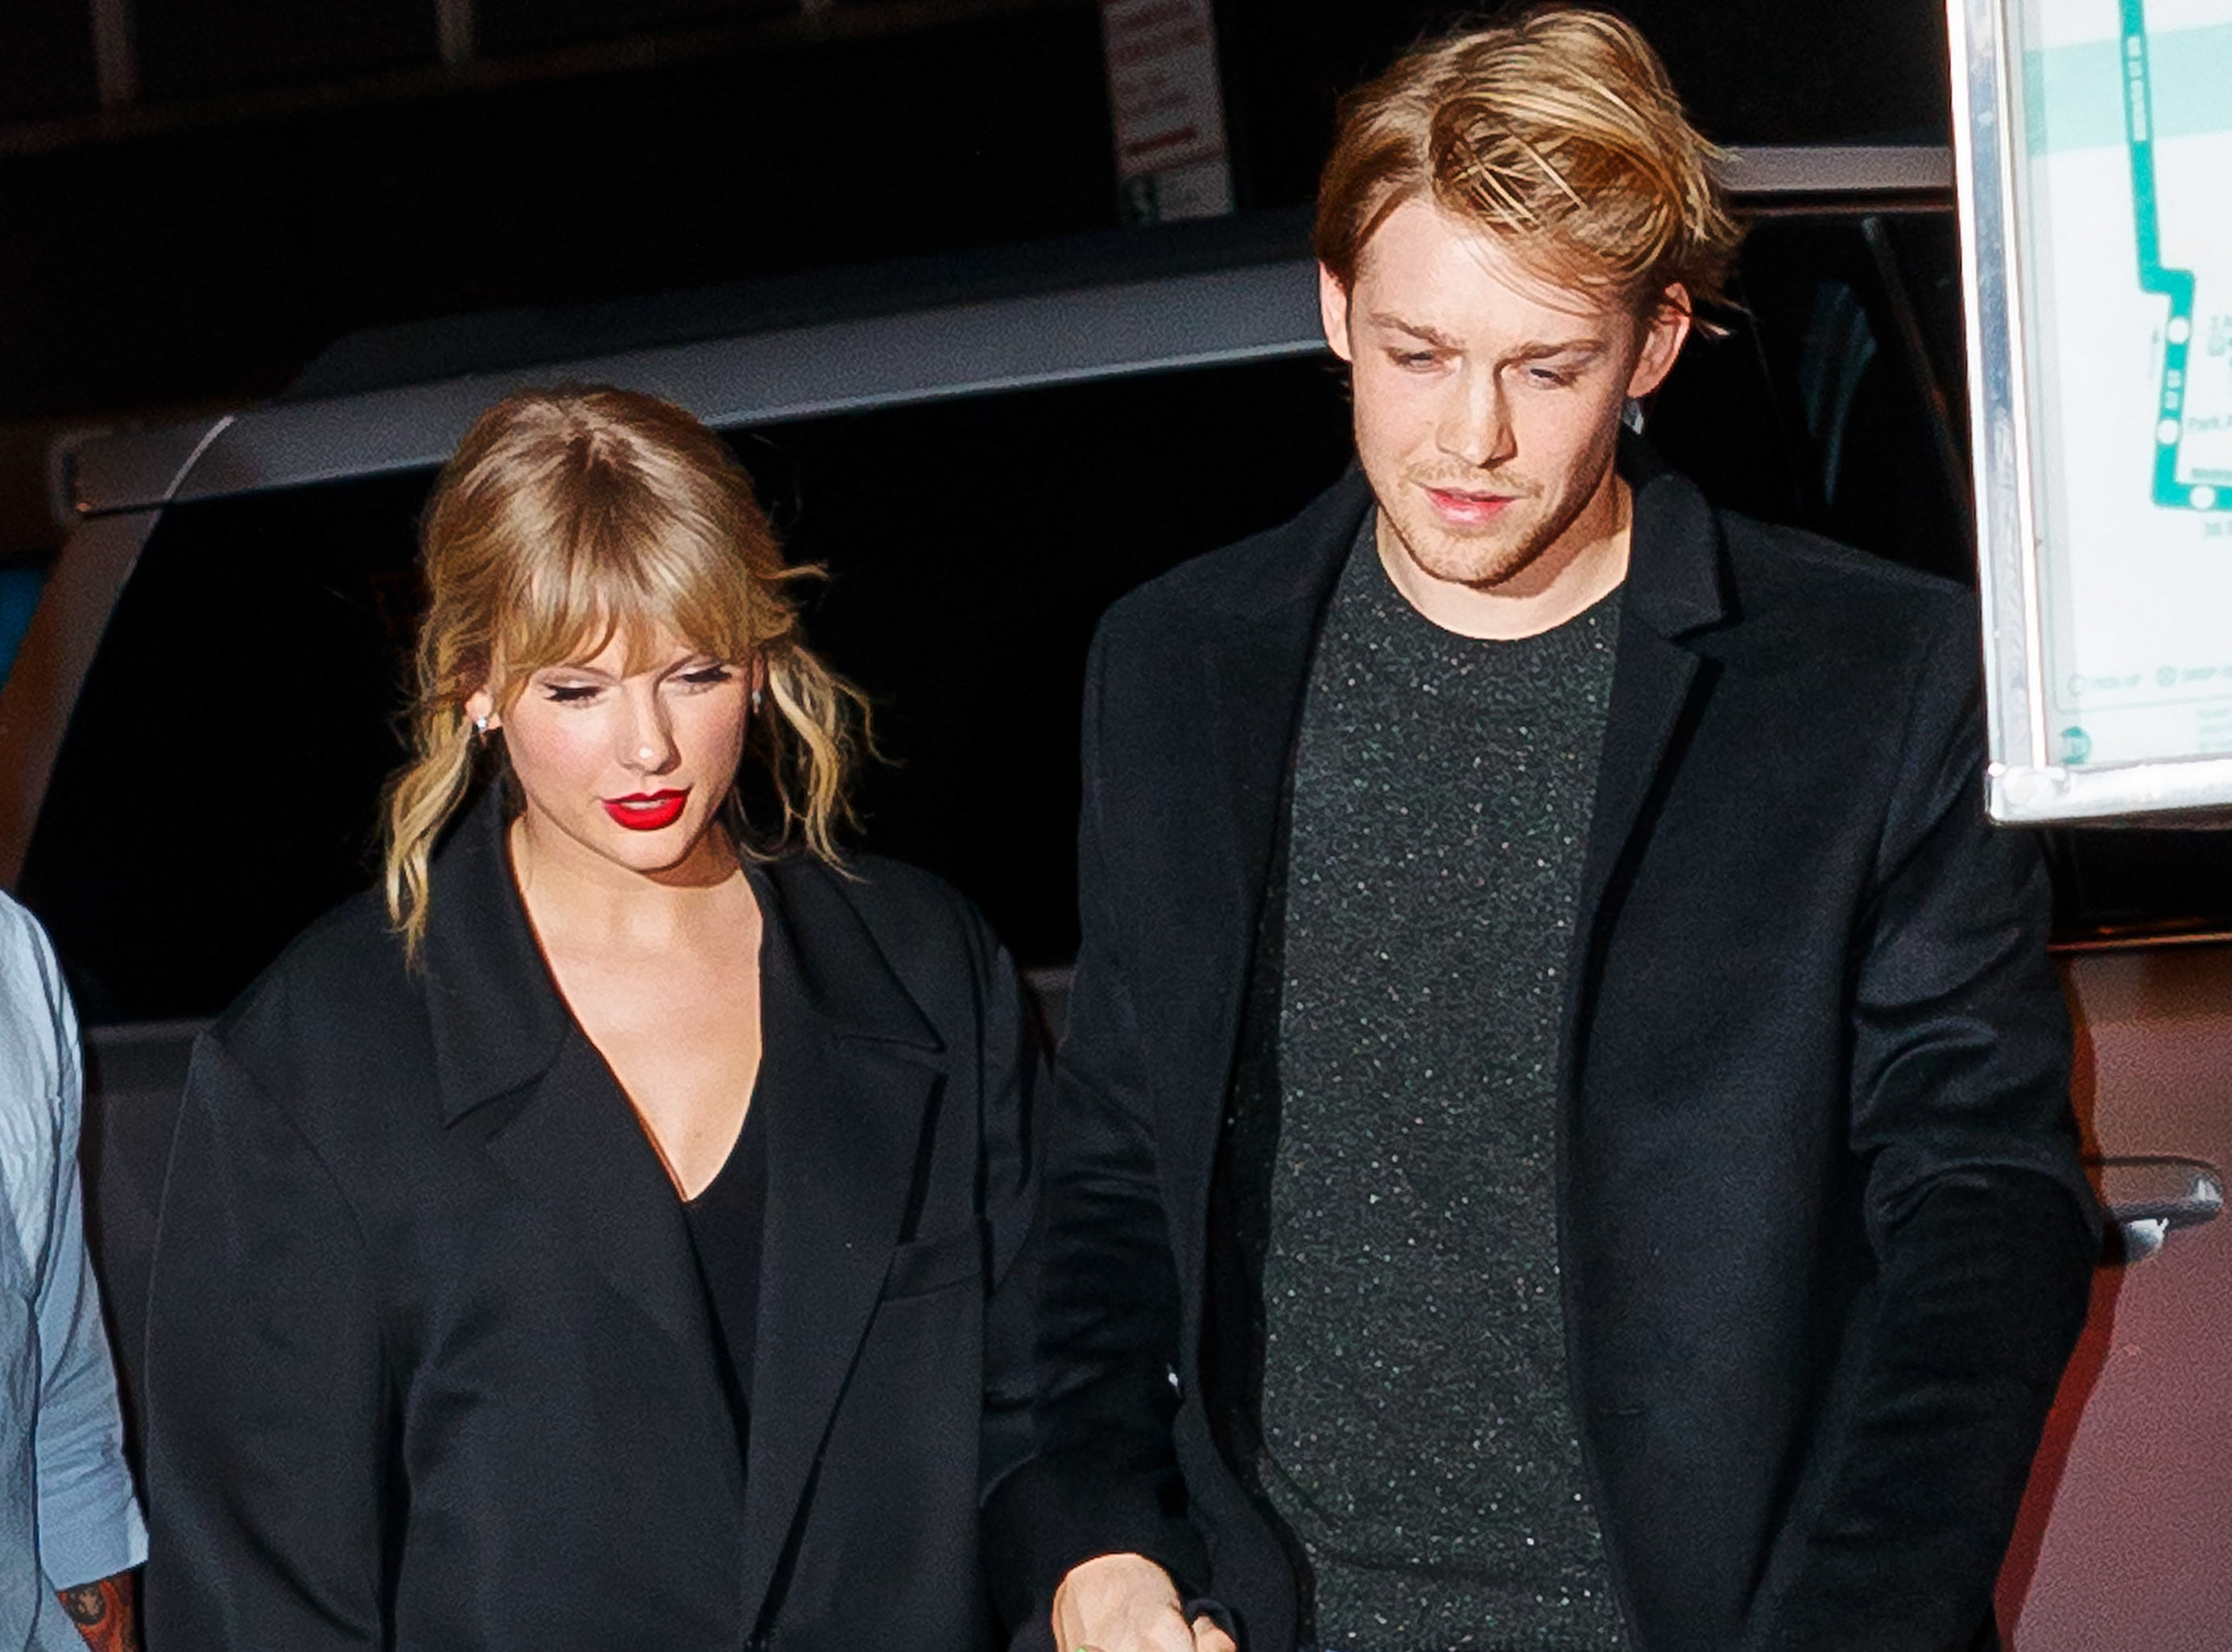 Taylor and Joe hold hands while exiting their car